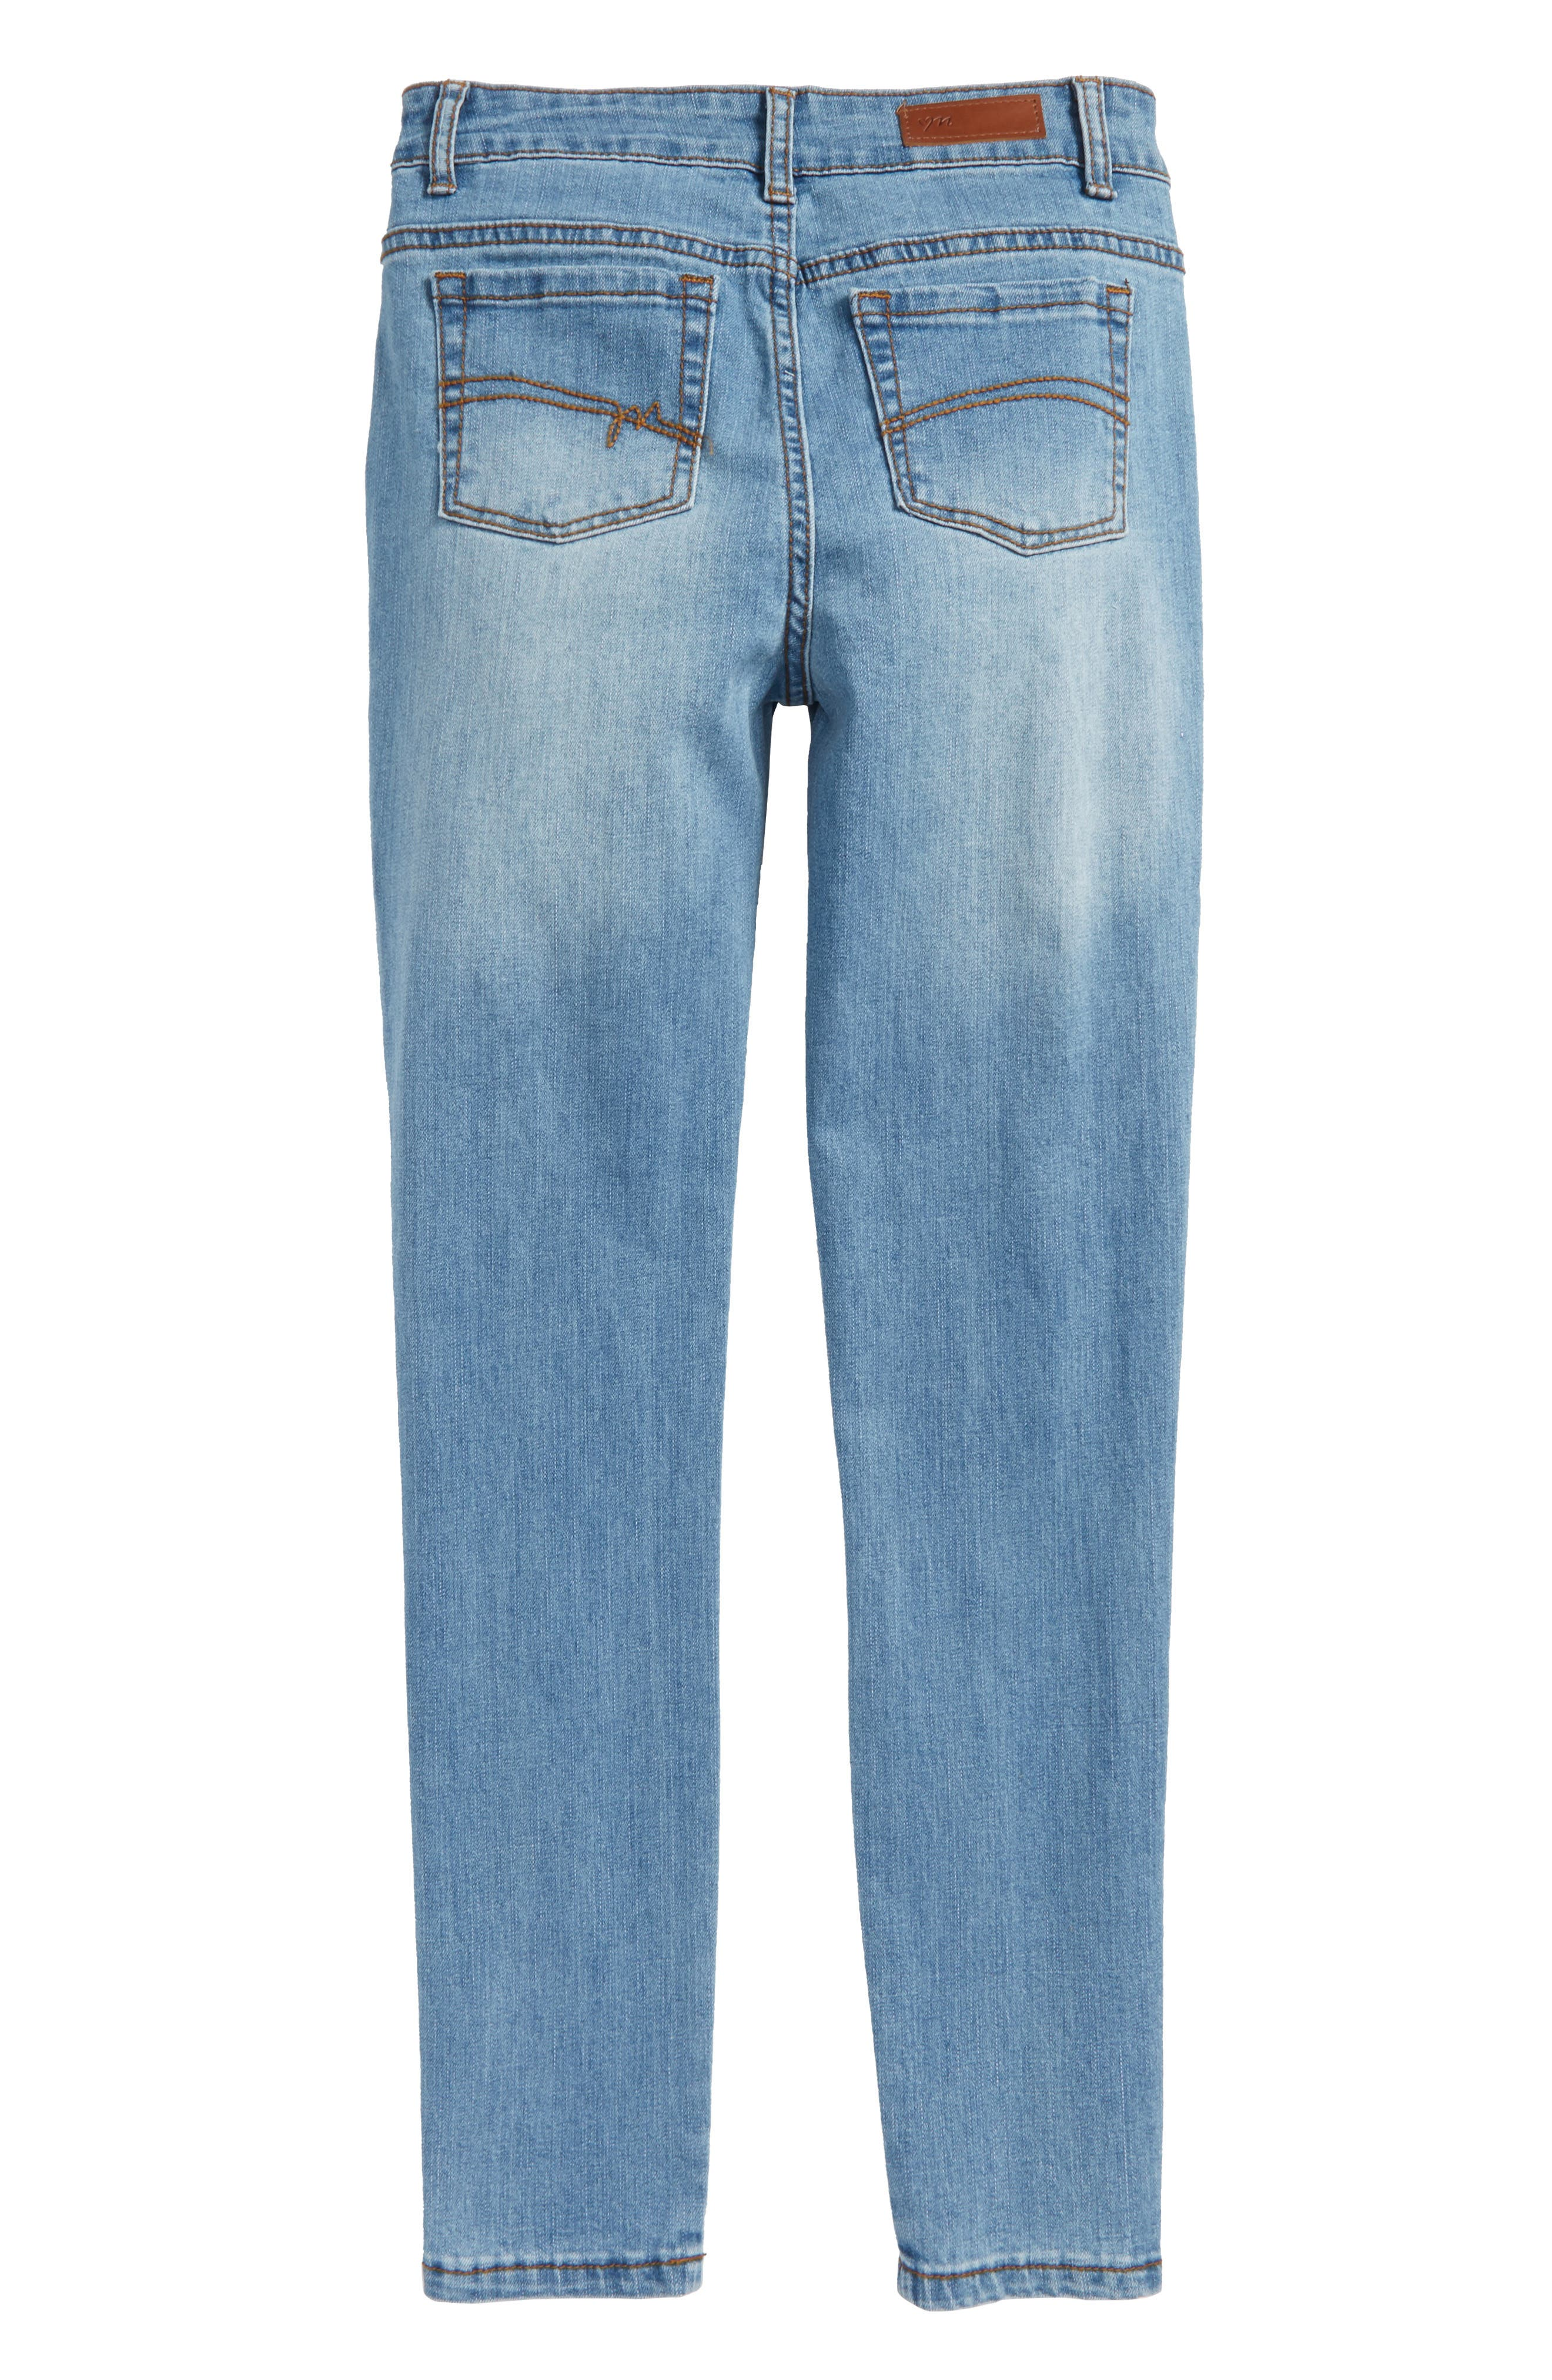 Distressed Skinny Jeans,                             Alternate thumbnail 2, color,                             Light Blue Denim